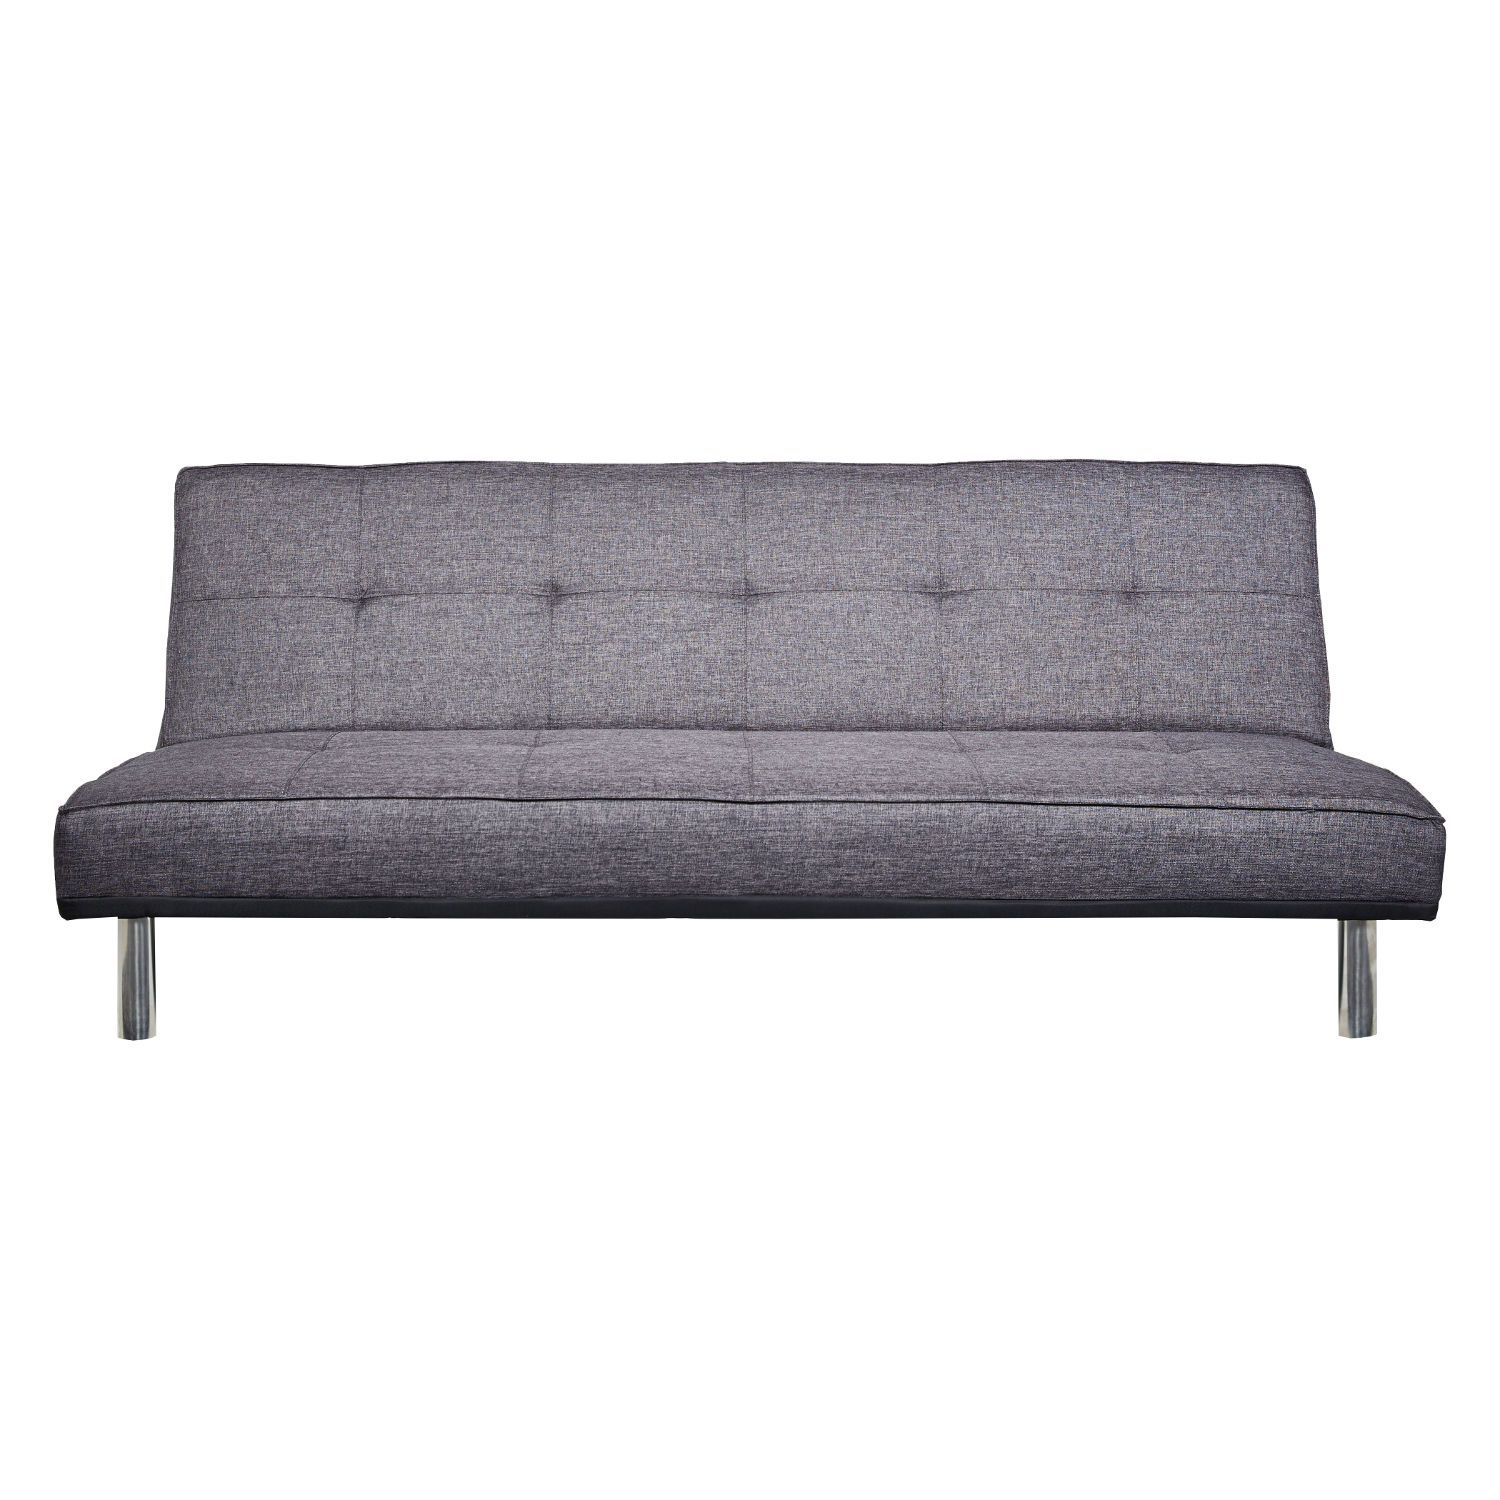 Zenko Faux Suede Sofa Bed U2013 Next Day Delivery Zenko Faux Suede Sofa Bed